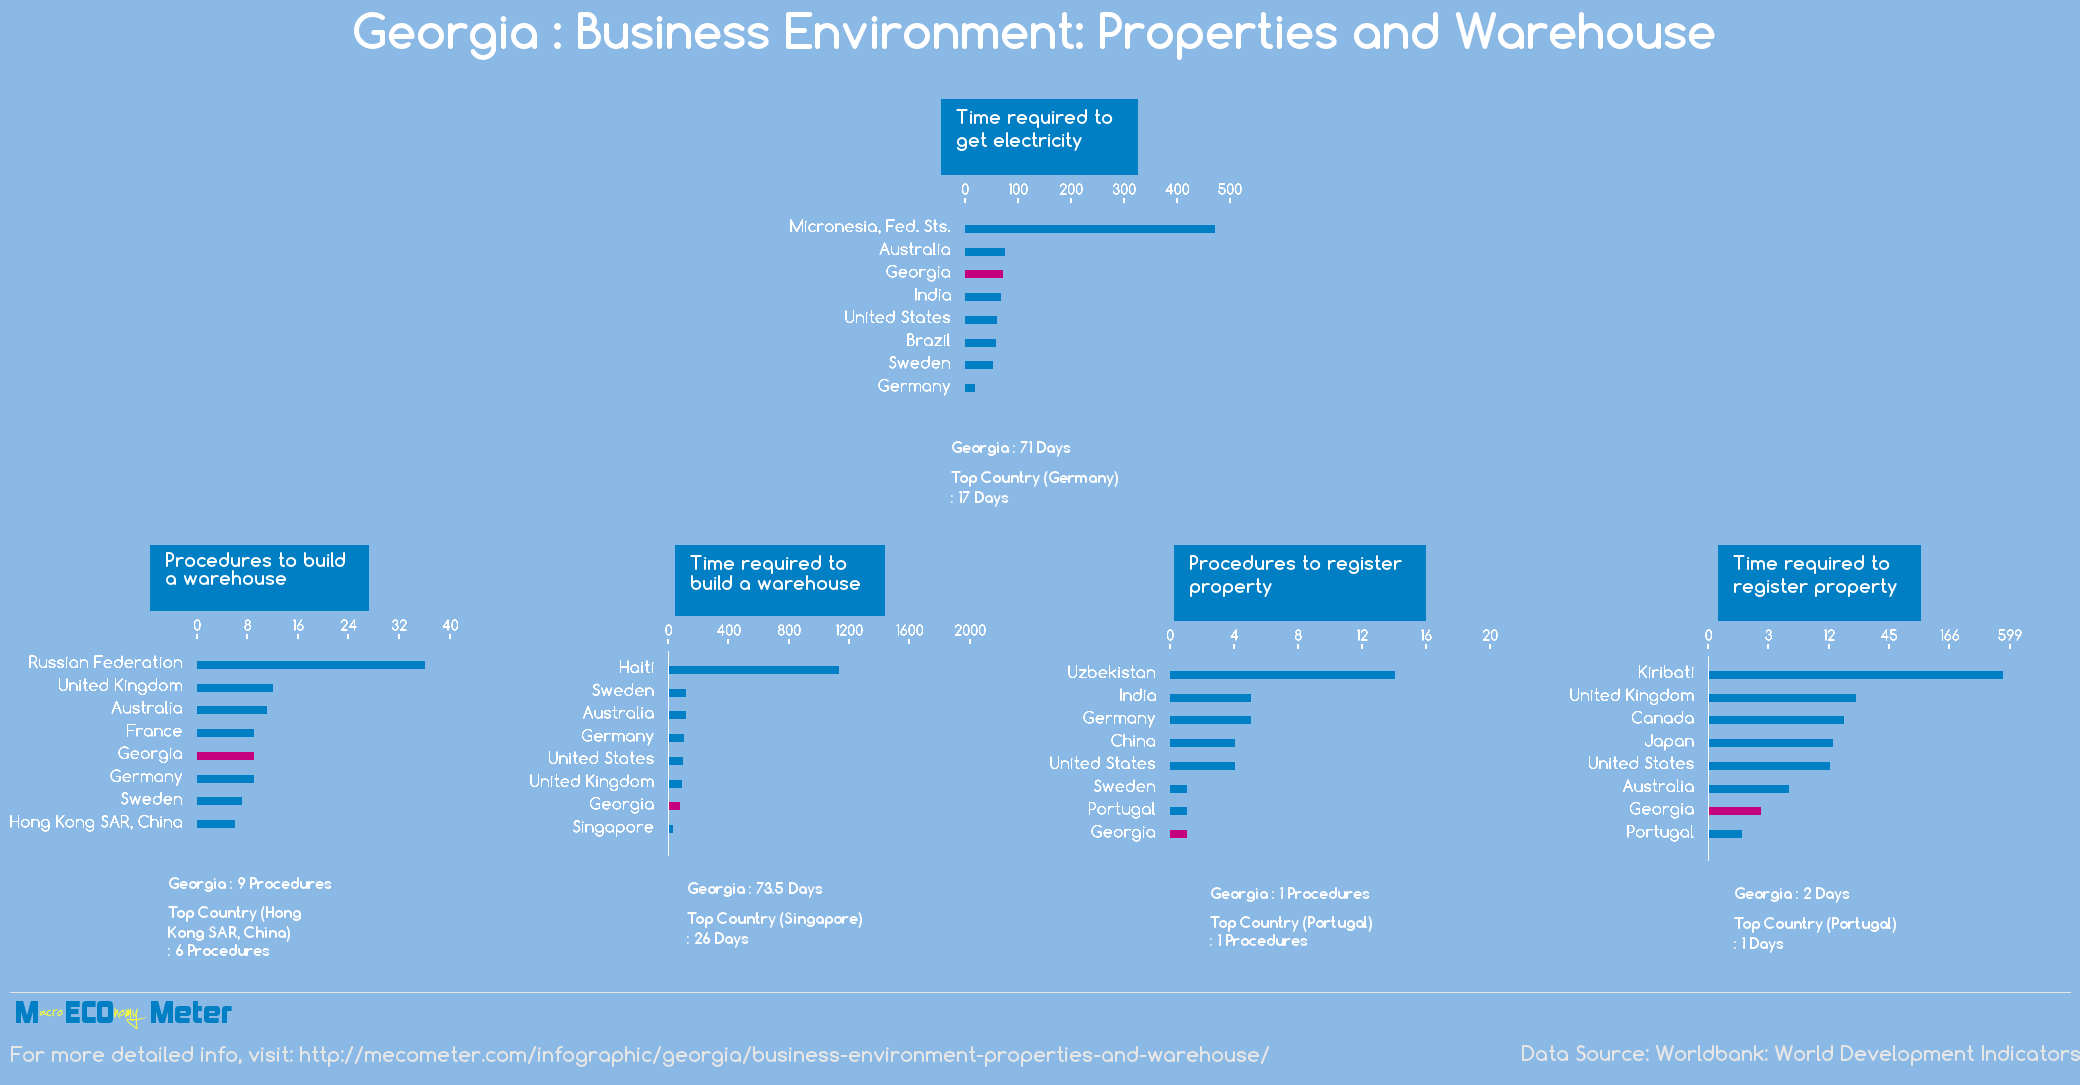 Georgia : Business Environment: Properties and Warehouse